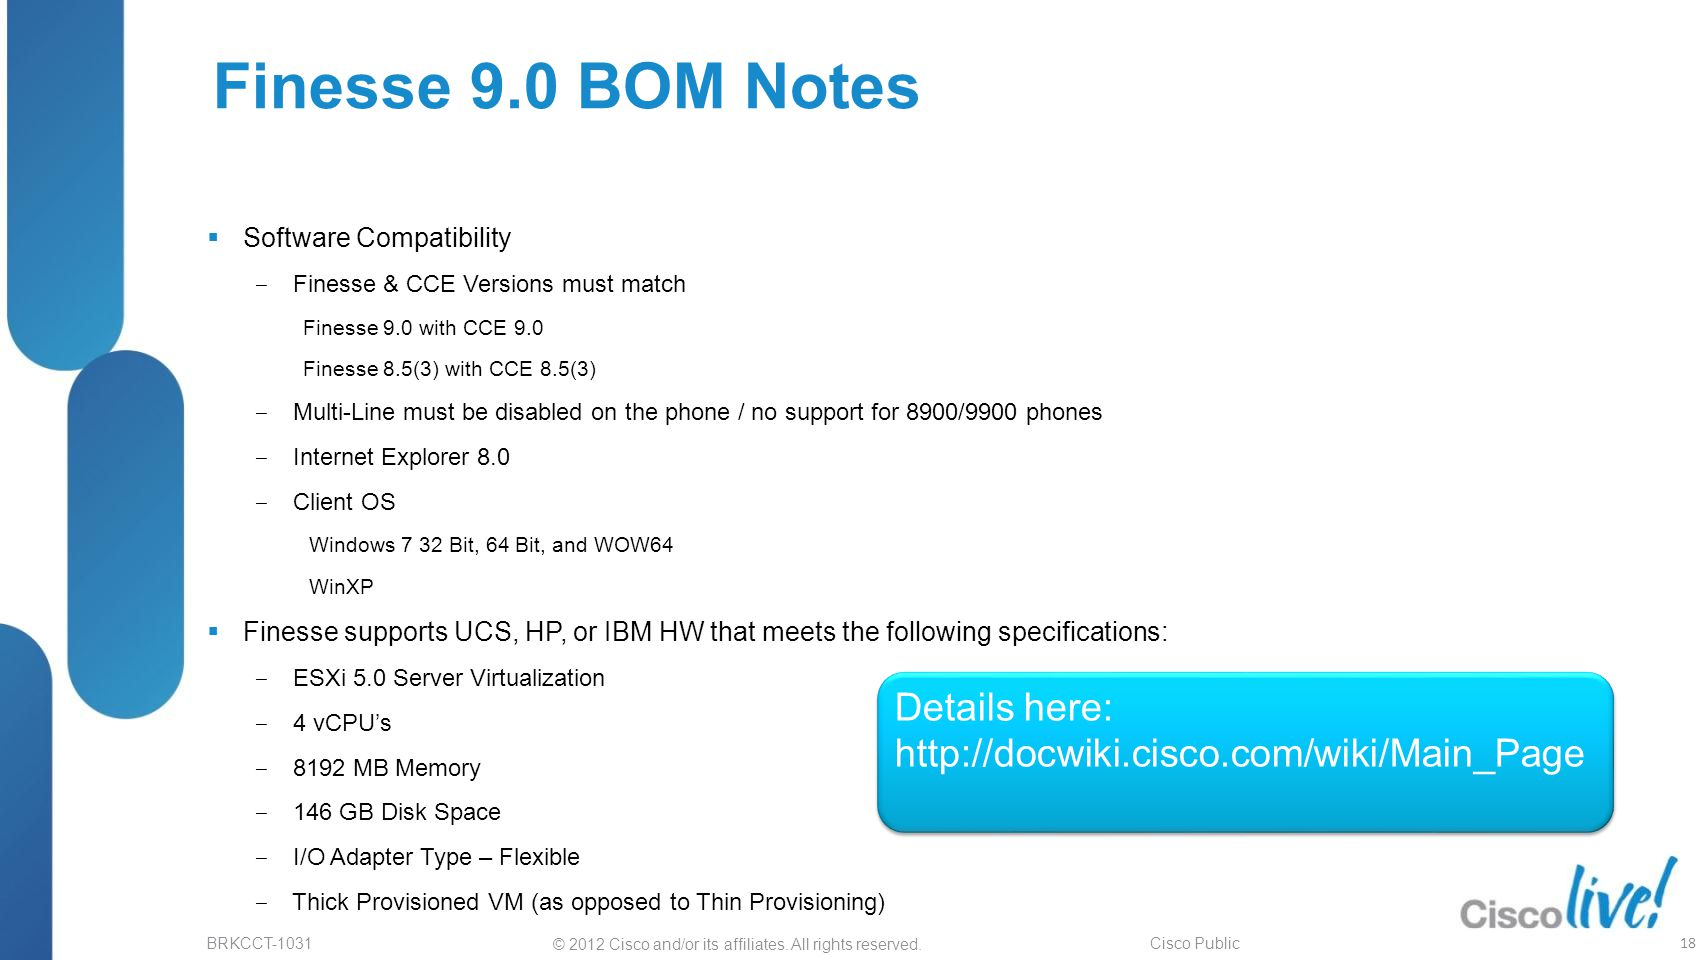 Finesse 9.0 BOM Notes Details here: